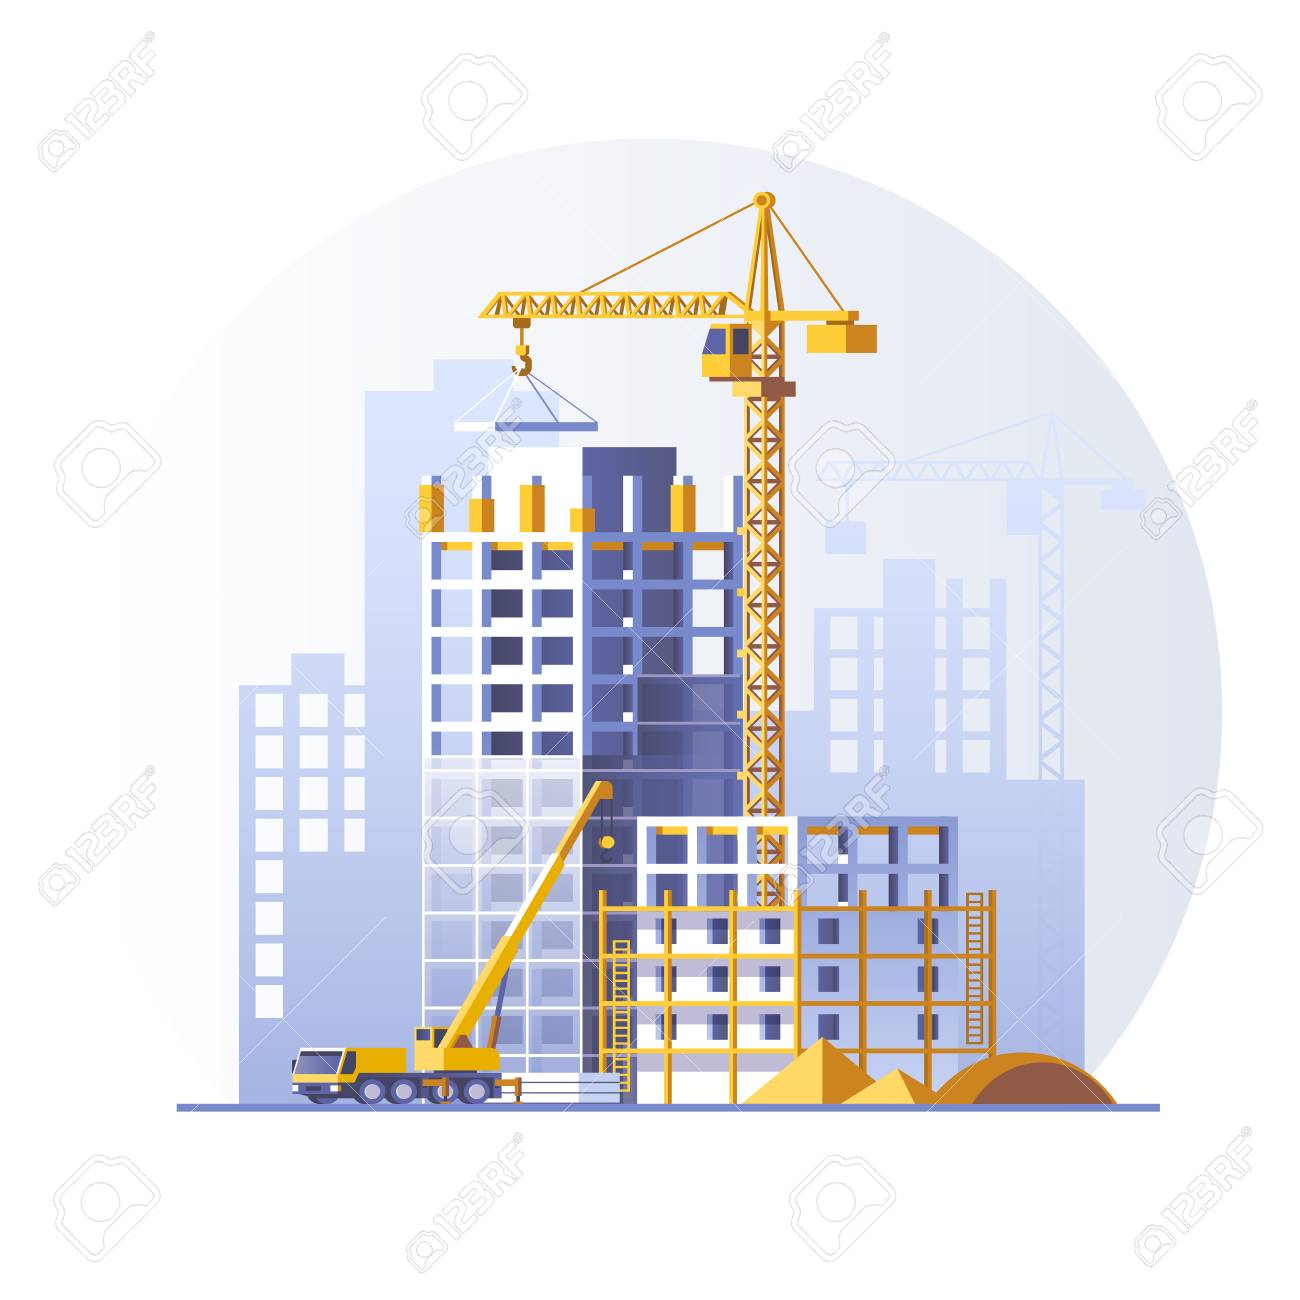 Construction of residential buildings. Construction site concept design. Flat style vector illustration. - 87860627